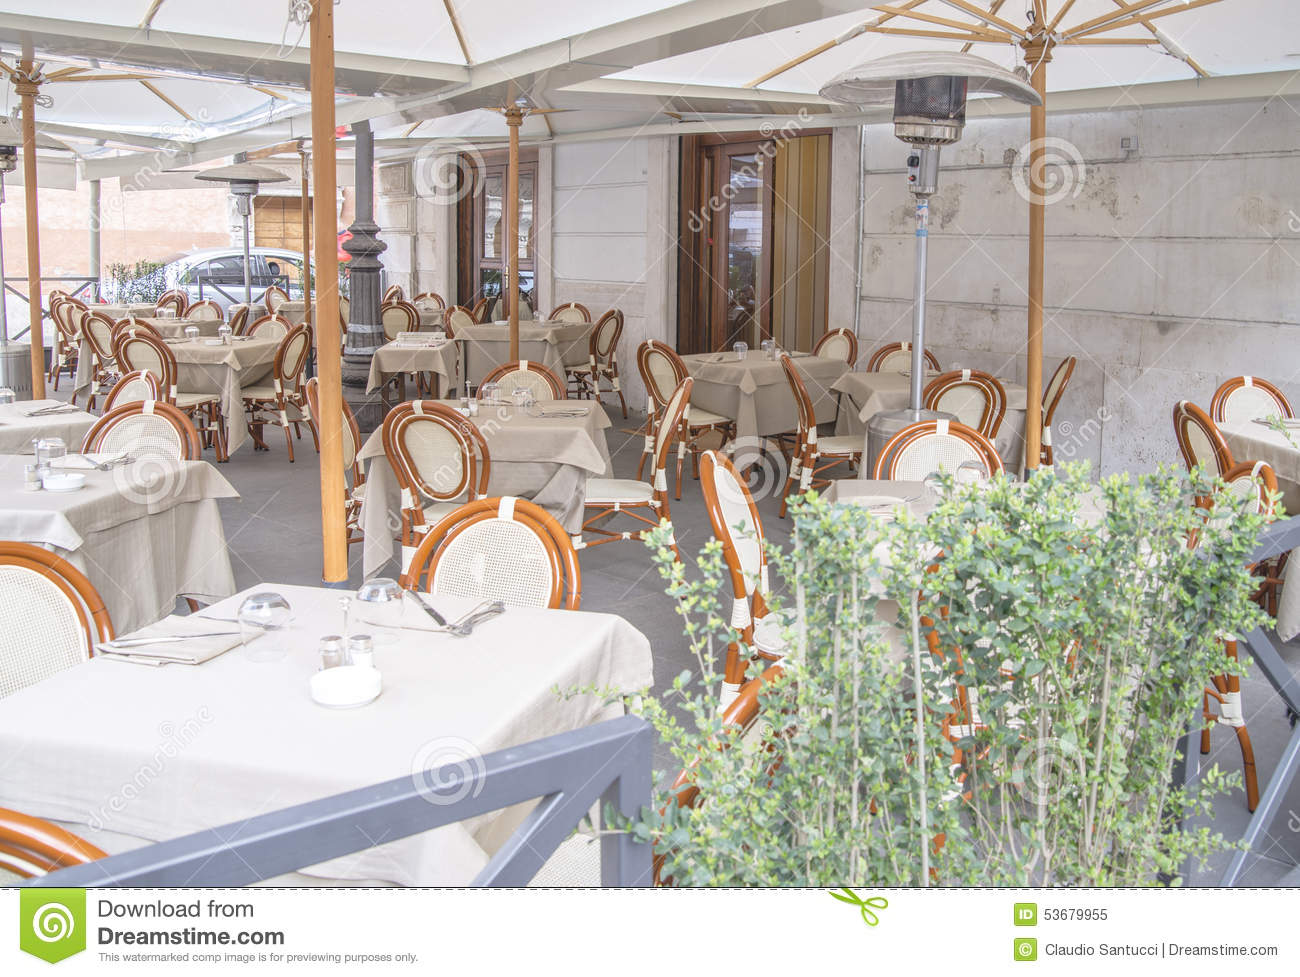 Ext rieur italien de restaurant photo stock image 53679955 for Exterieur italien